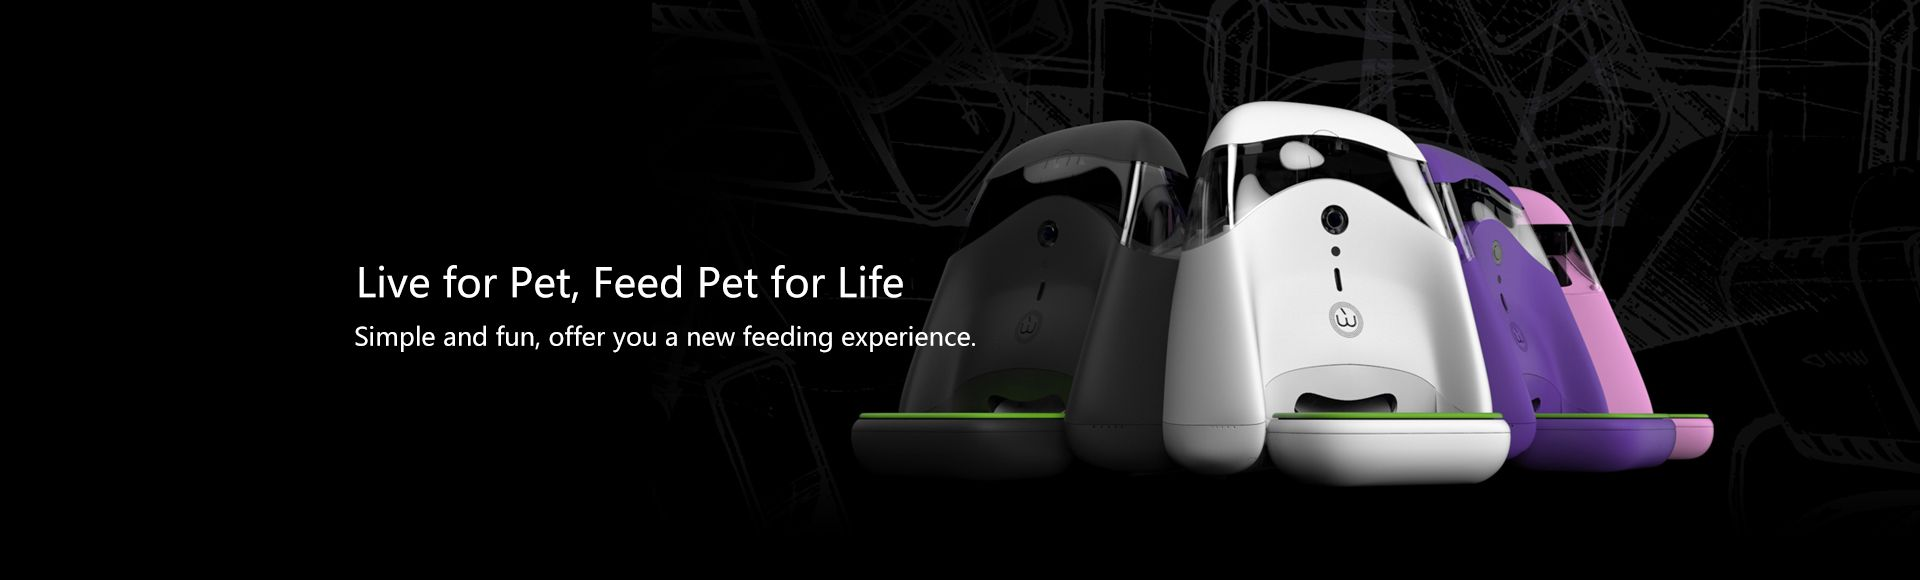 Wangjiao Smart Pet Feeder  - With 1 million pixels HD camera, WiFi connect, Interactive voice response